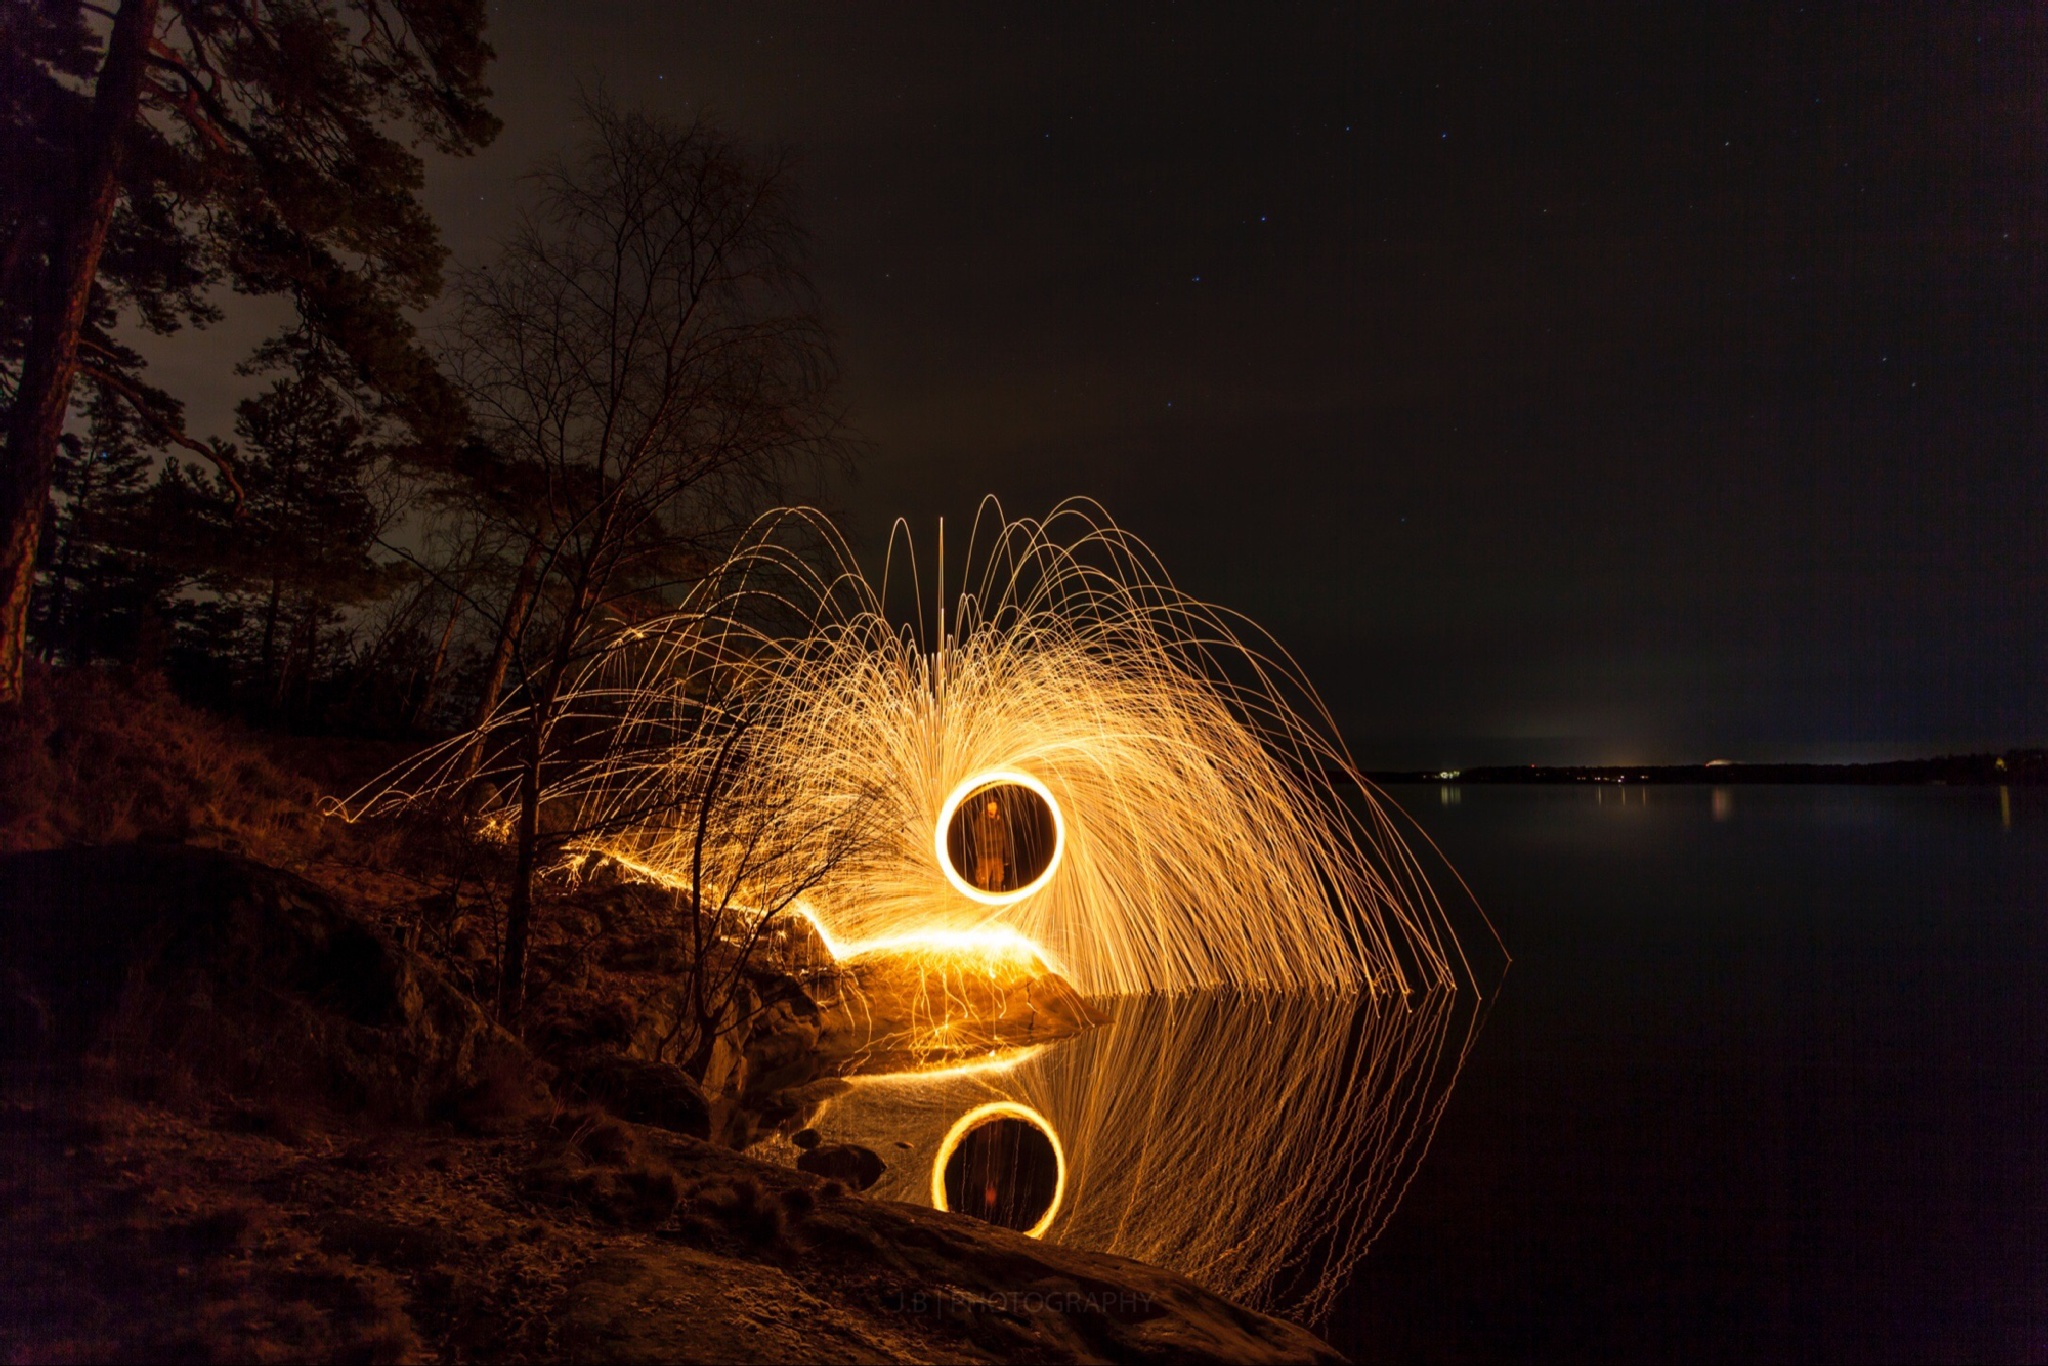 Lightshow in the woods by Jens Bäfver